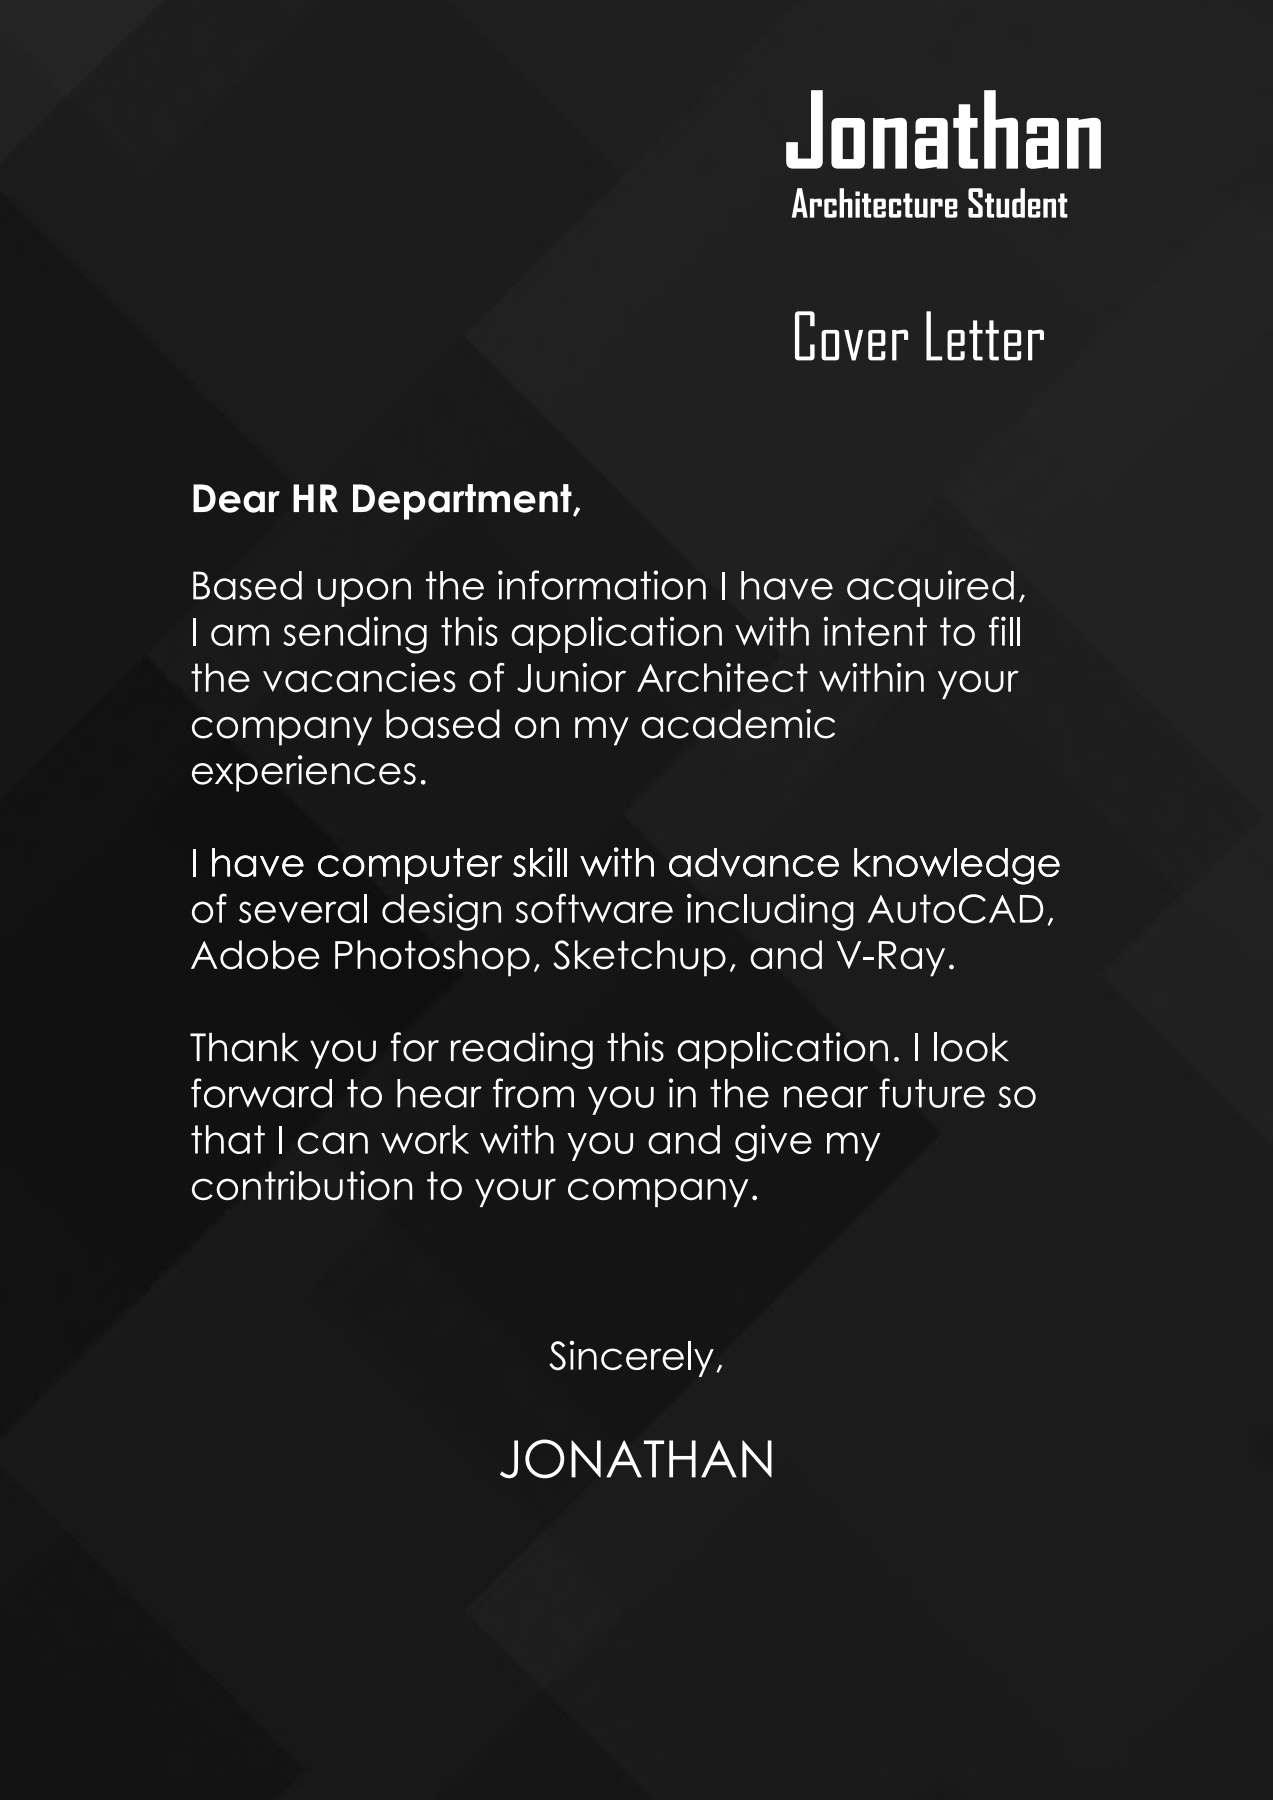 Cover Letter With Portfolio Primary Concept Top Rated